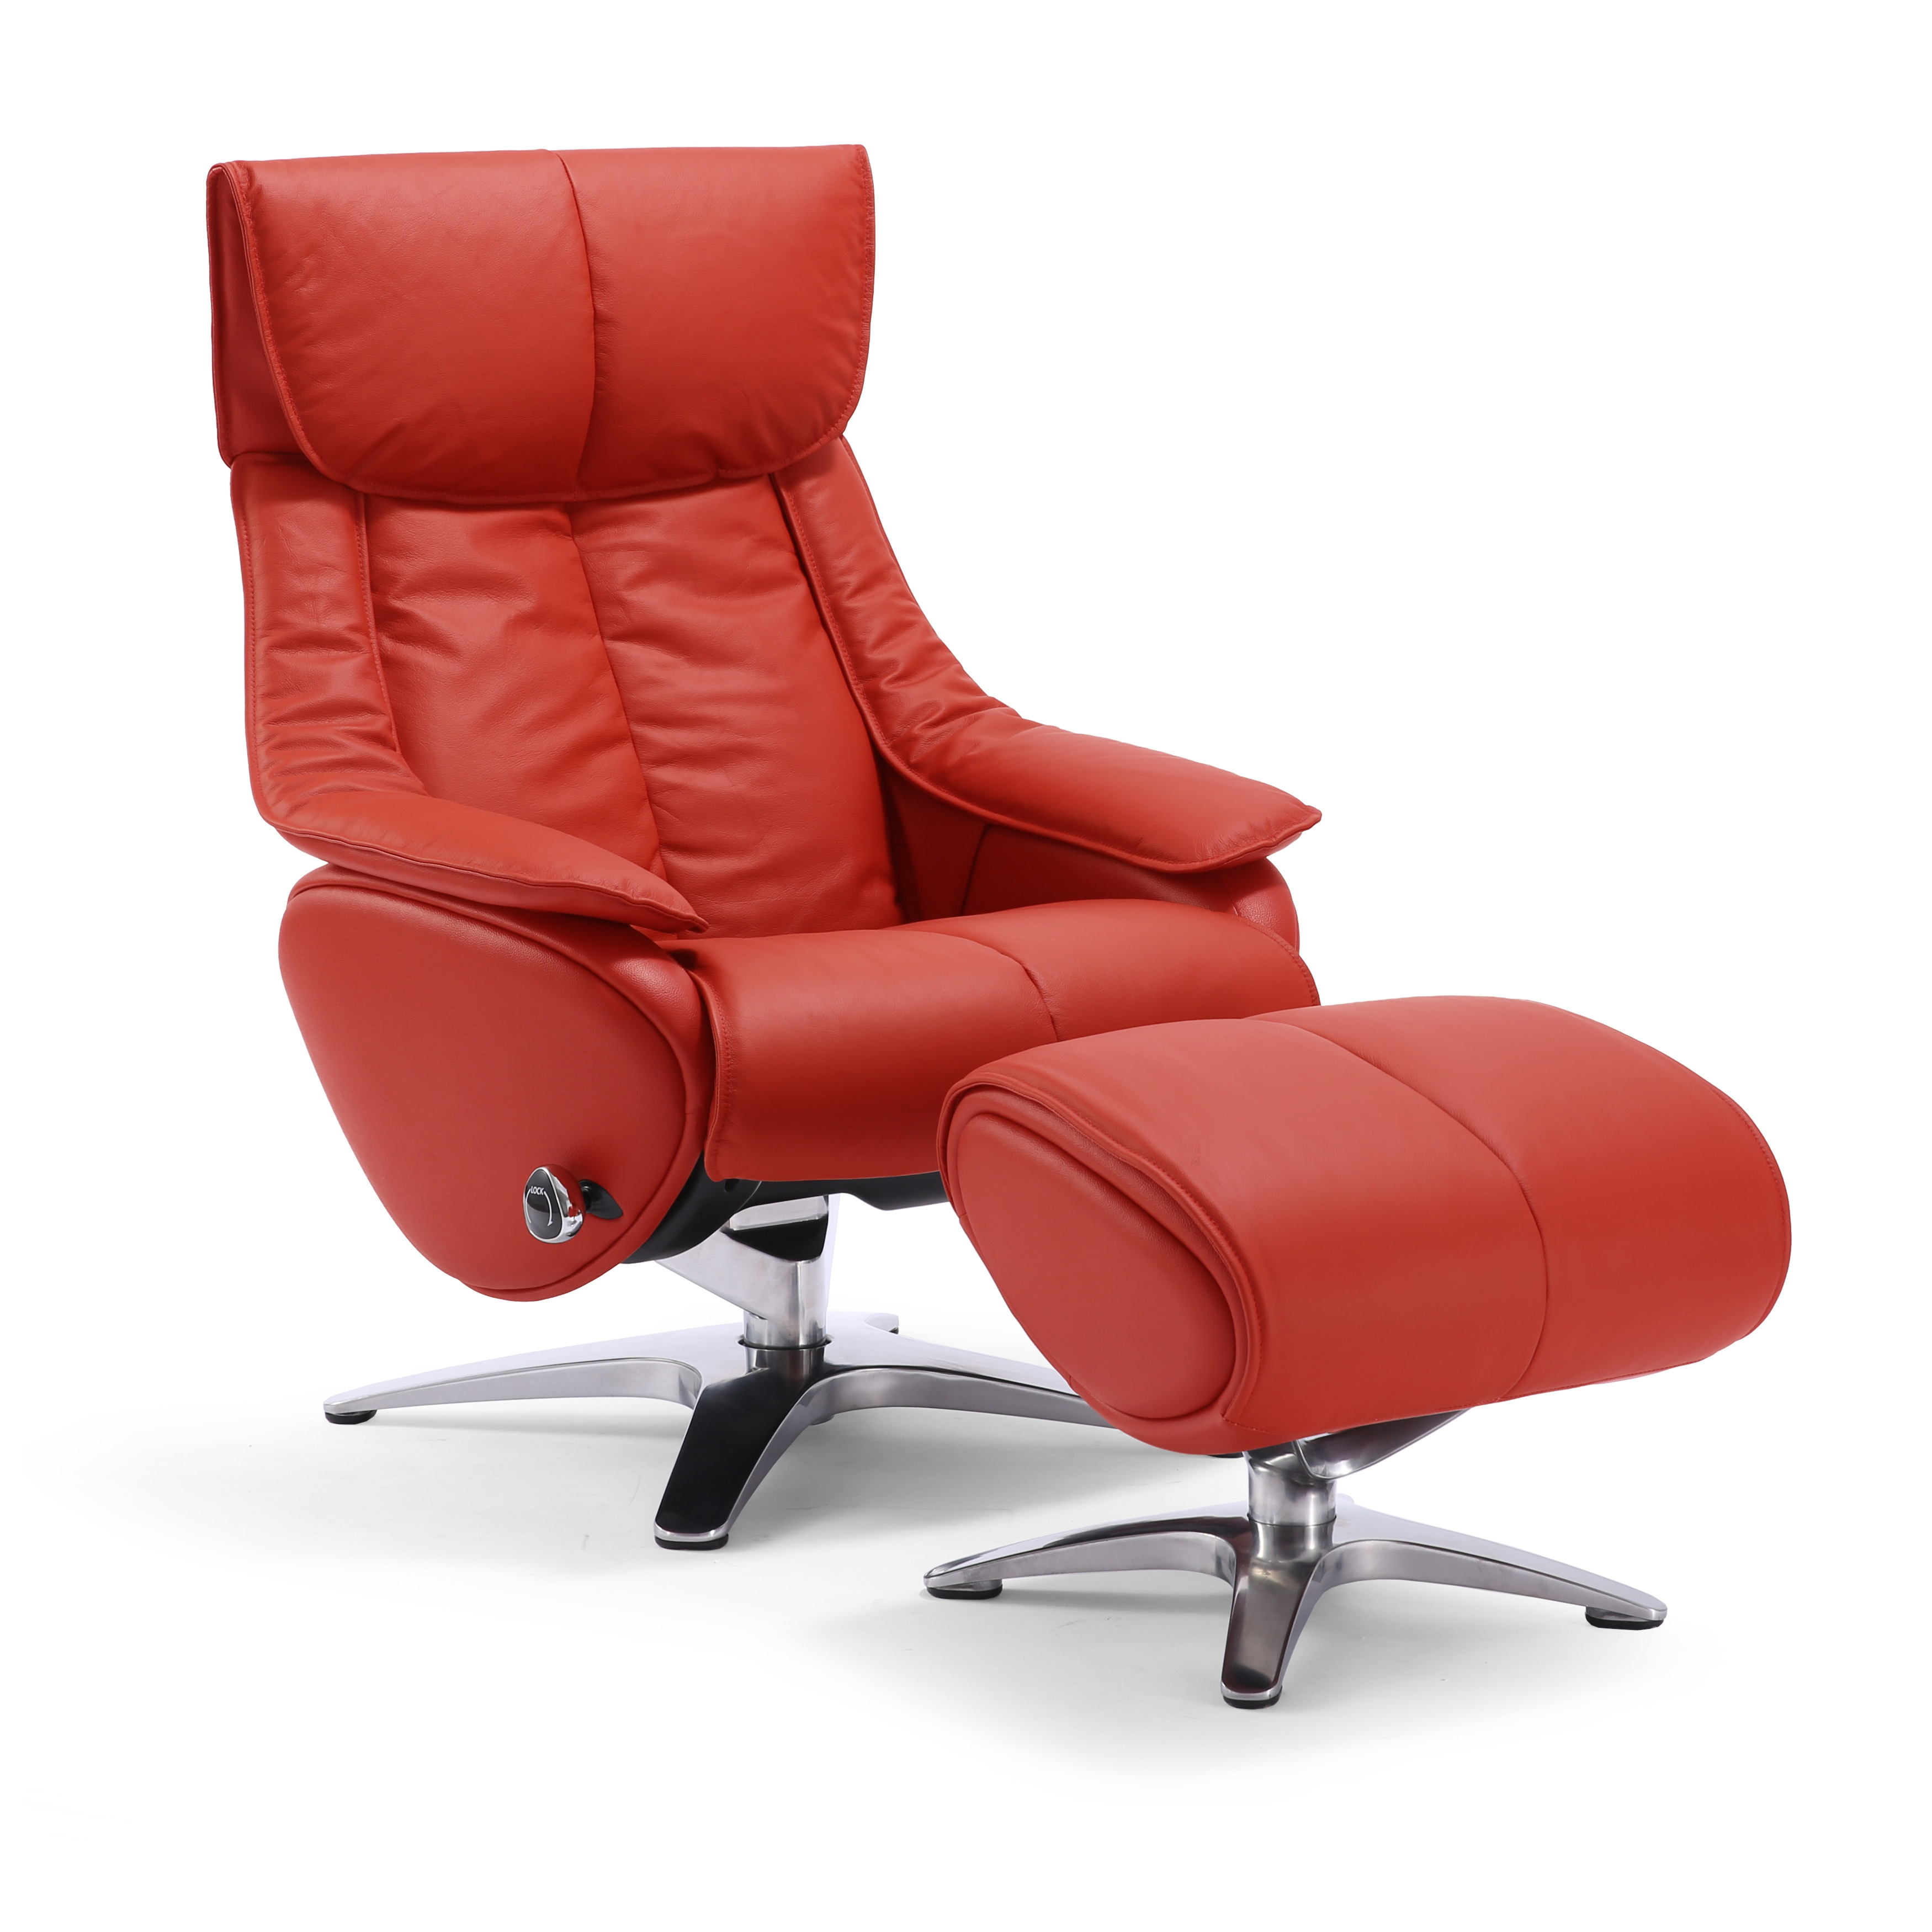 Red Leather Swivel Chair Red Leather Swivel Recliner Chair